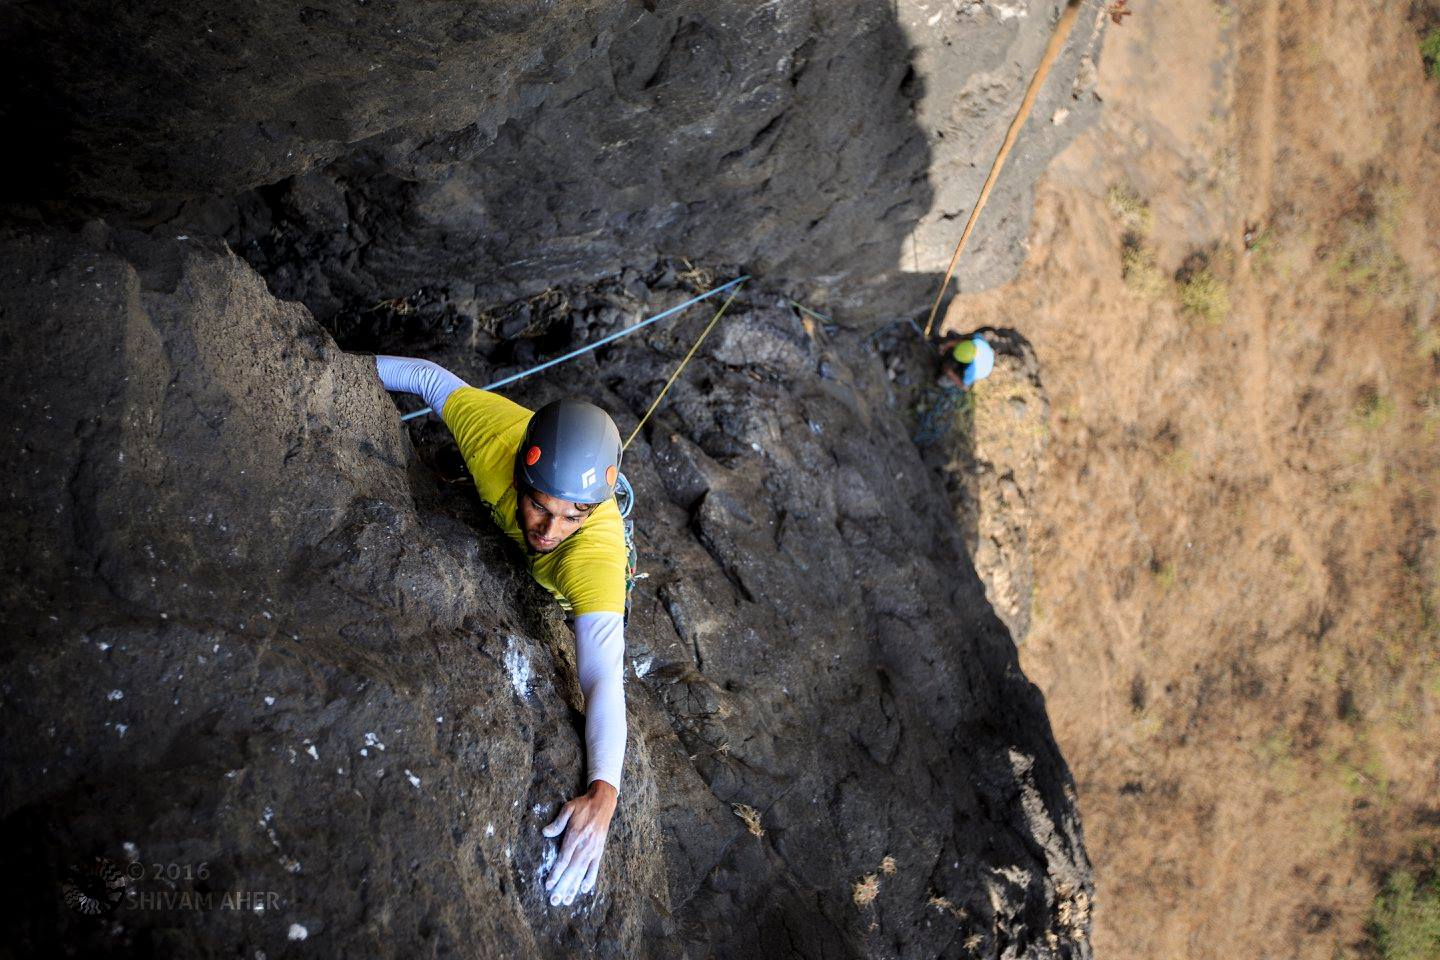 Trad Climbing in India - The Duo, about to nail a first ascent on the route